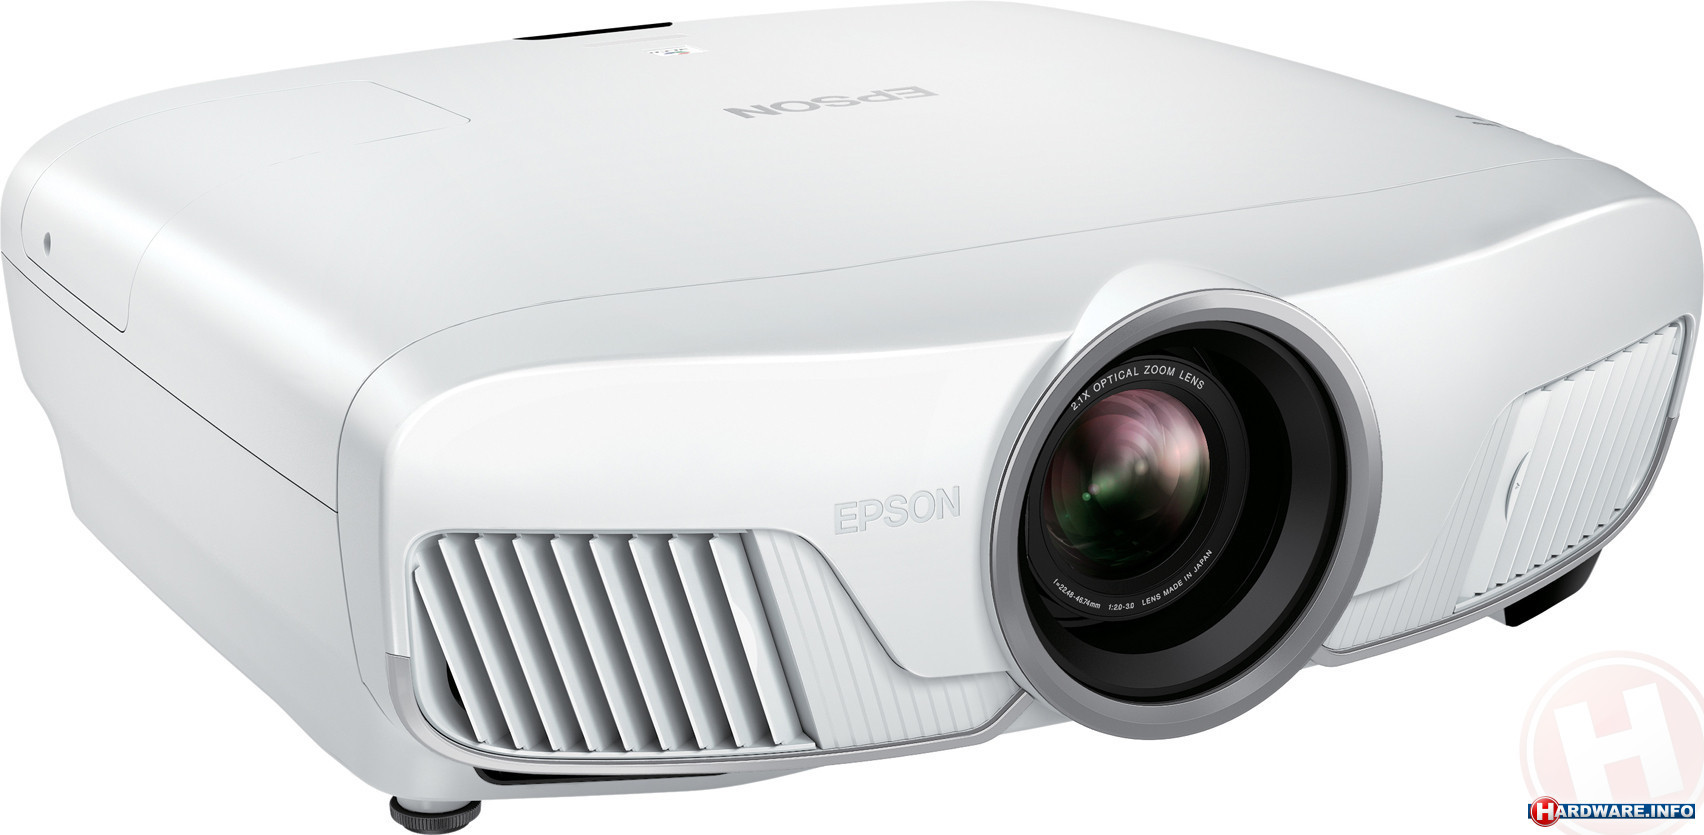 Epson EH-TW9300W home cinema projector review: Between 2K and 4K